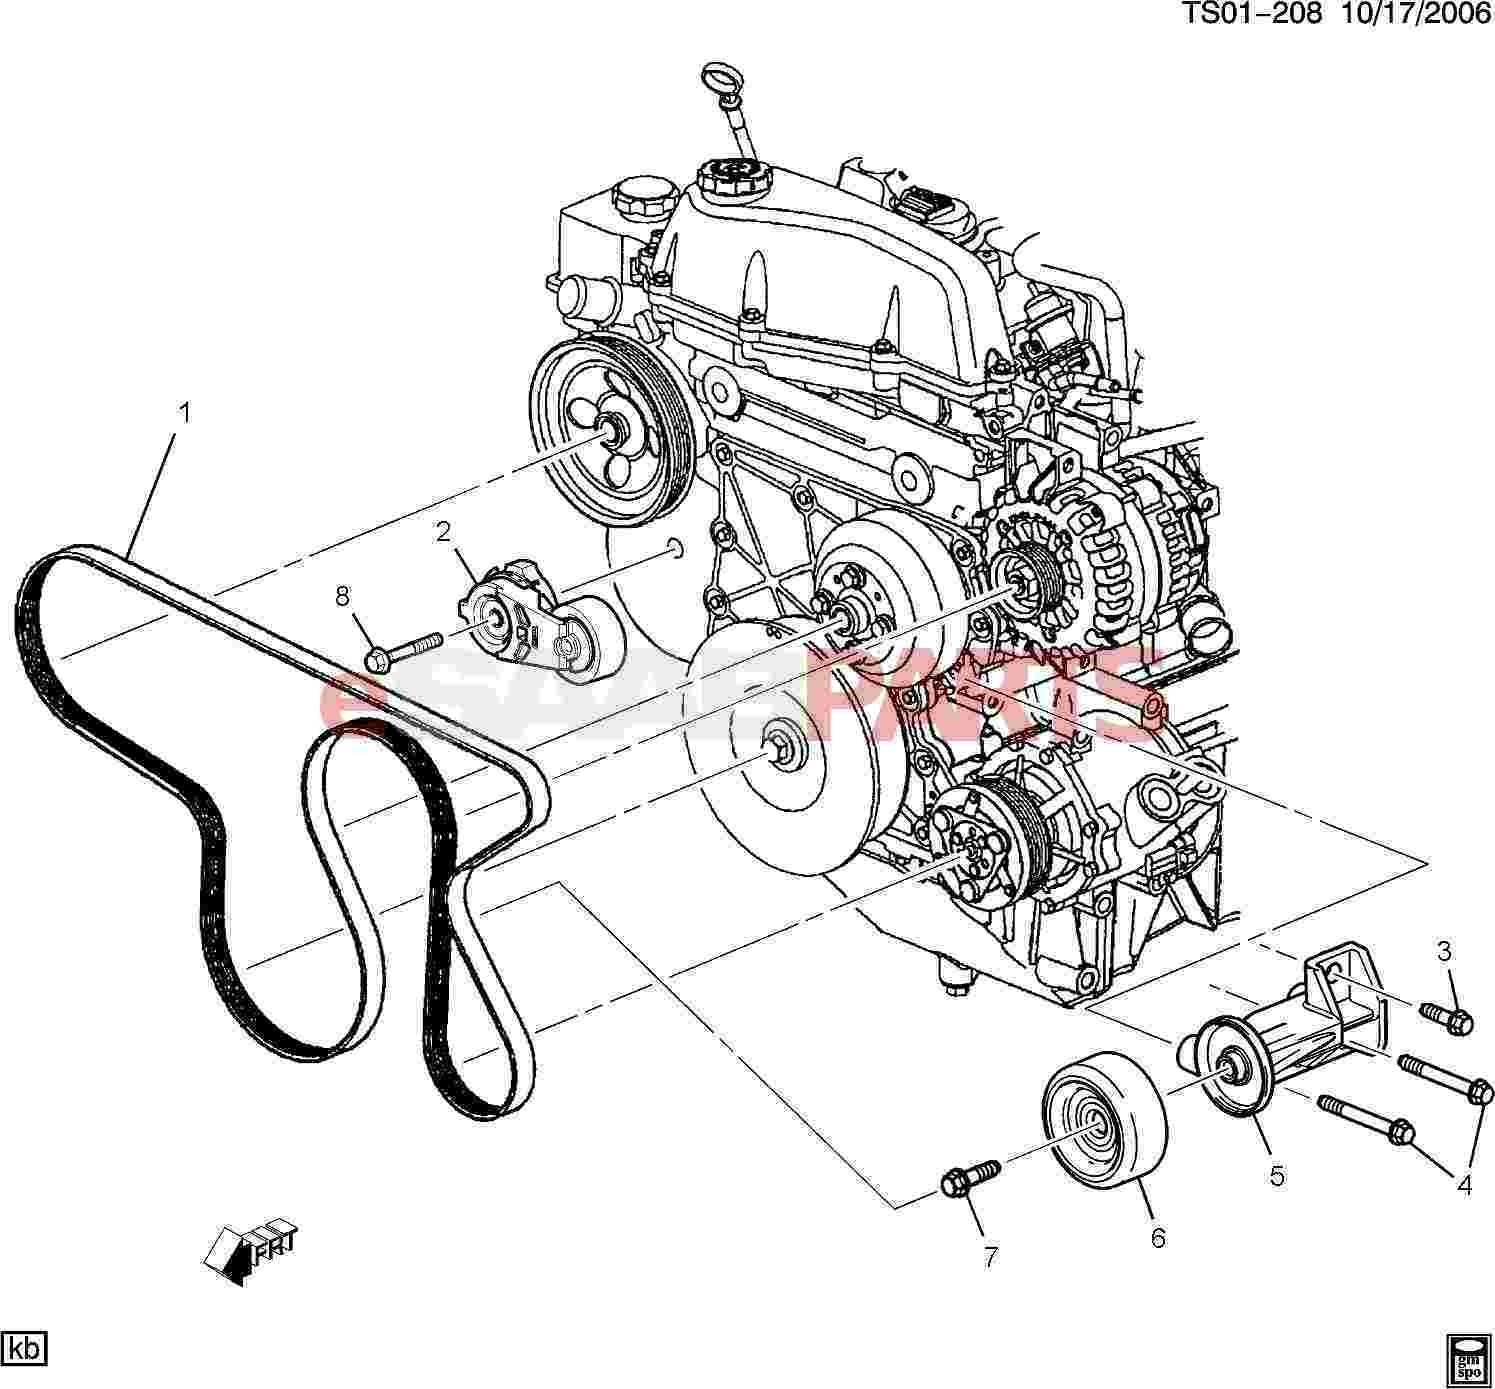 saab 9 5 trailer wiring diagram smart wiring diagrams u2022 rh emgsolutions co 2001 Saab Radiator Diagram 2003 Saab 9 3 Radiator Diagram